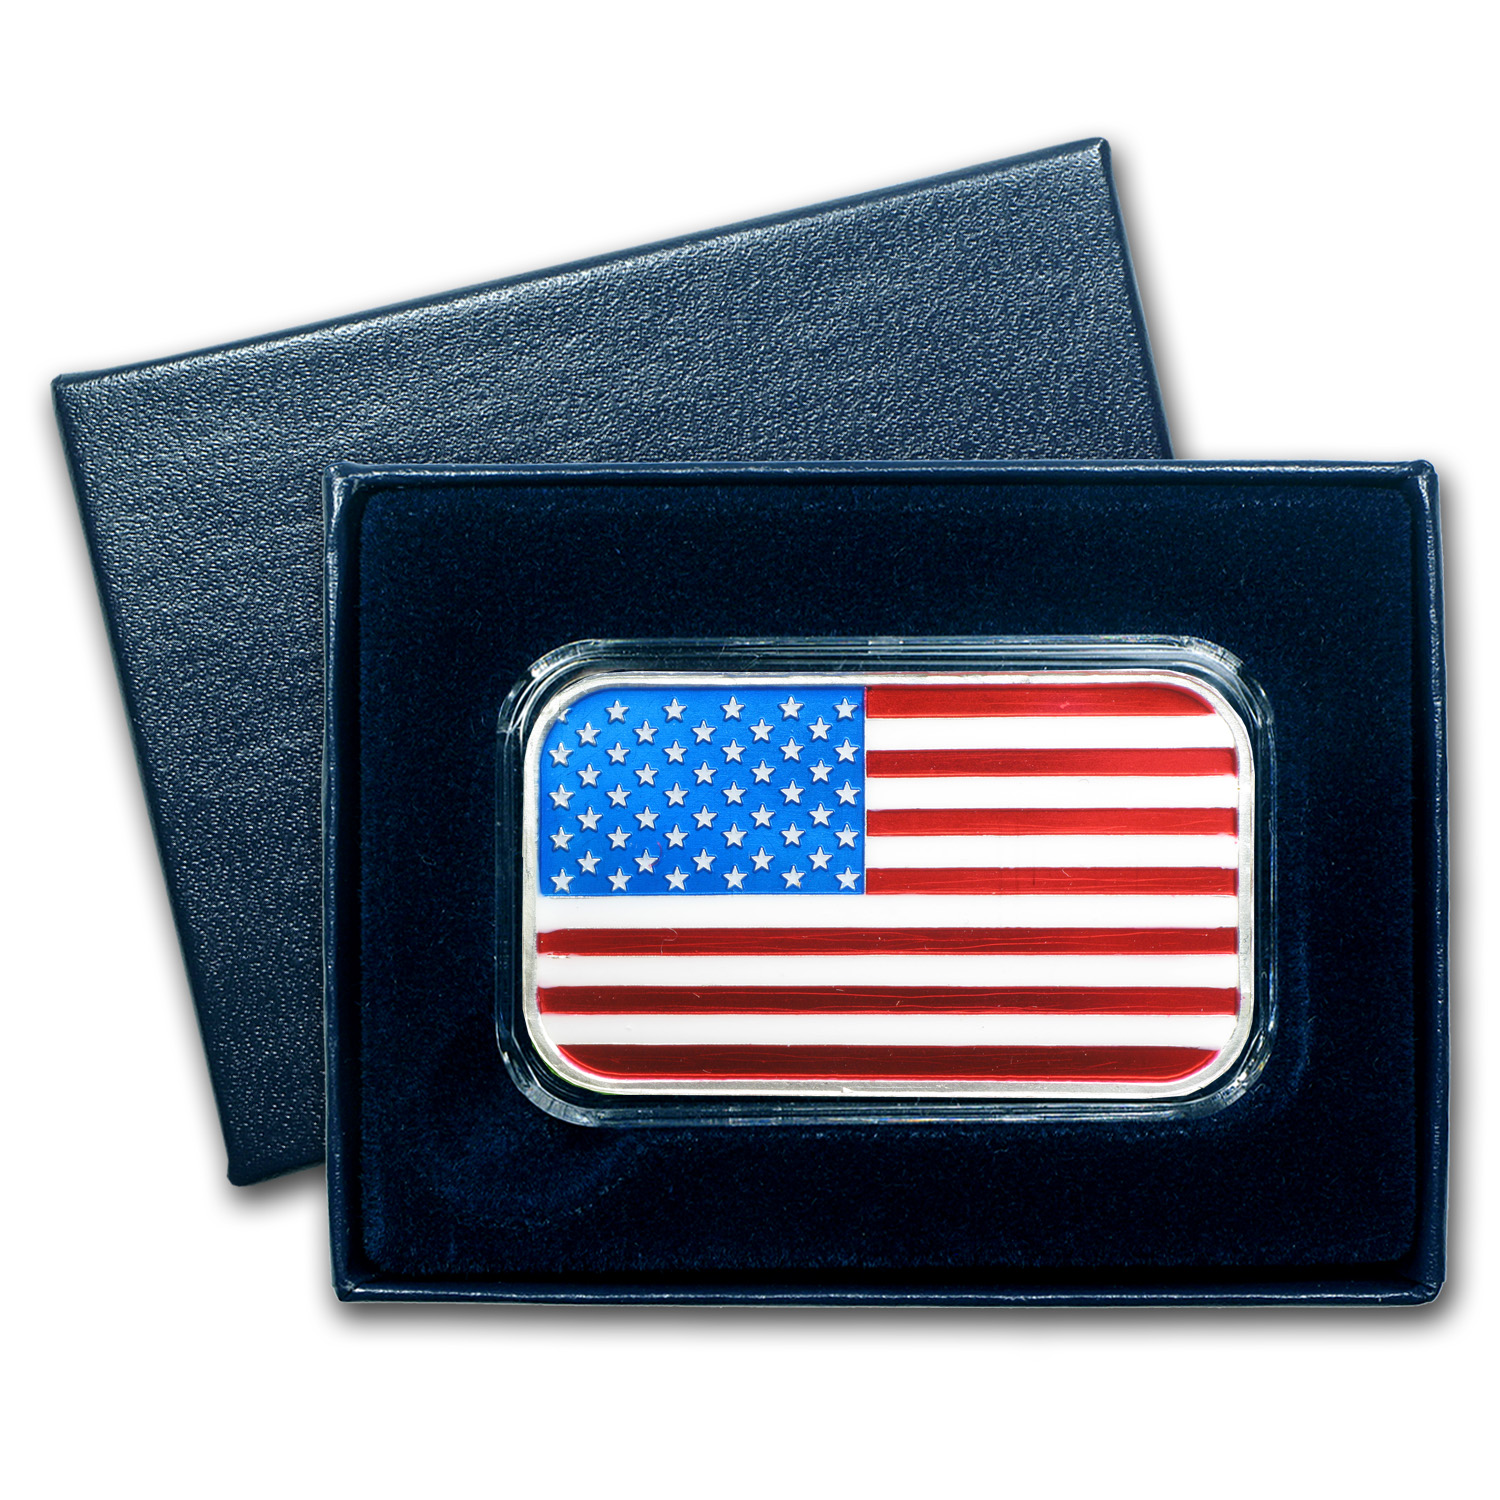 1 oz Silver Bars - American Flag Enameled (w/Box & Capsule)